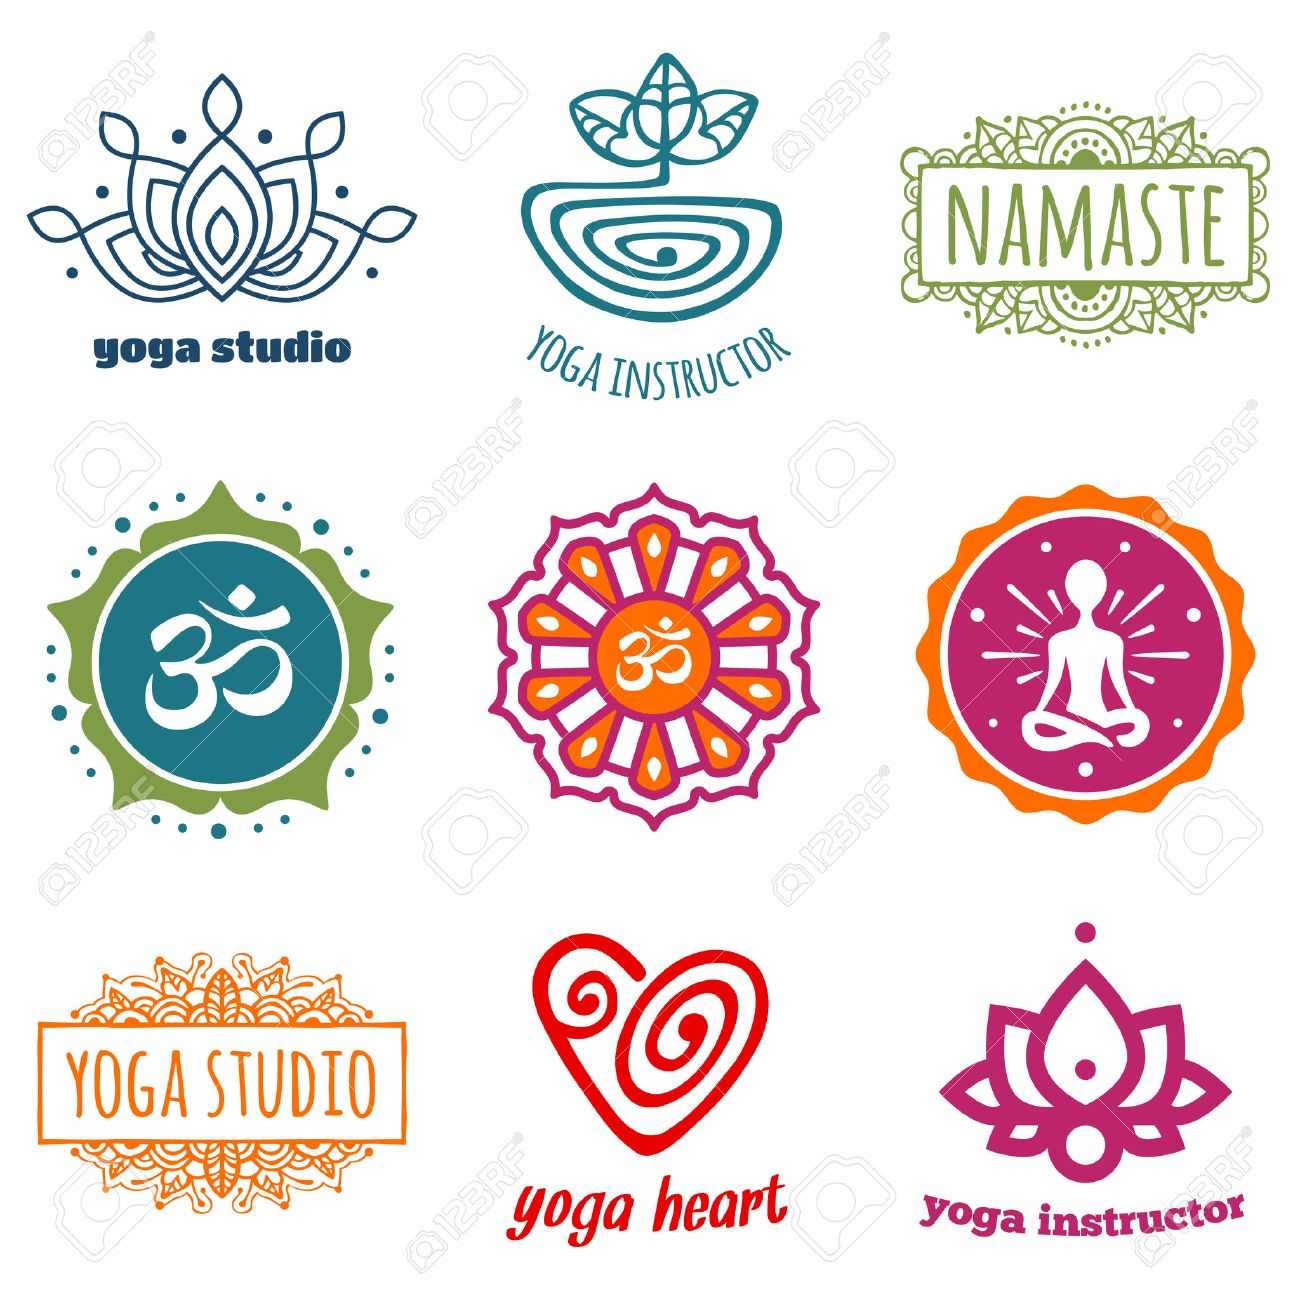 Set of yoga and meditation graphics and symbols royalty free set of yoga and meditation graphics and symbols stock vector 26622407 biocorpaavc